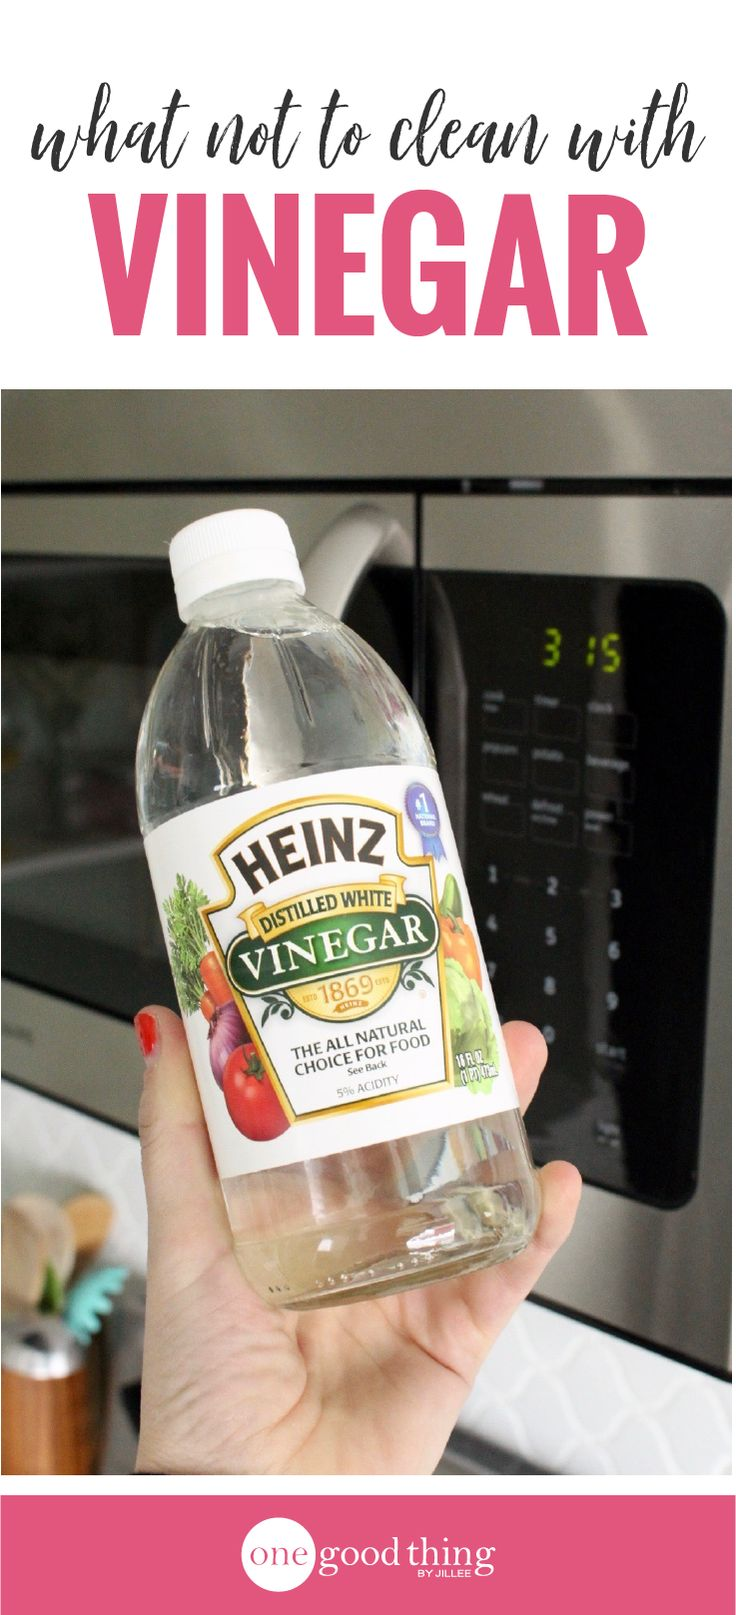 Vinegar works great as a natural and affordable cleaner, but you shouldn't use it on everything! Here's what you need to know to clean with vinegar.